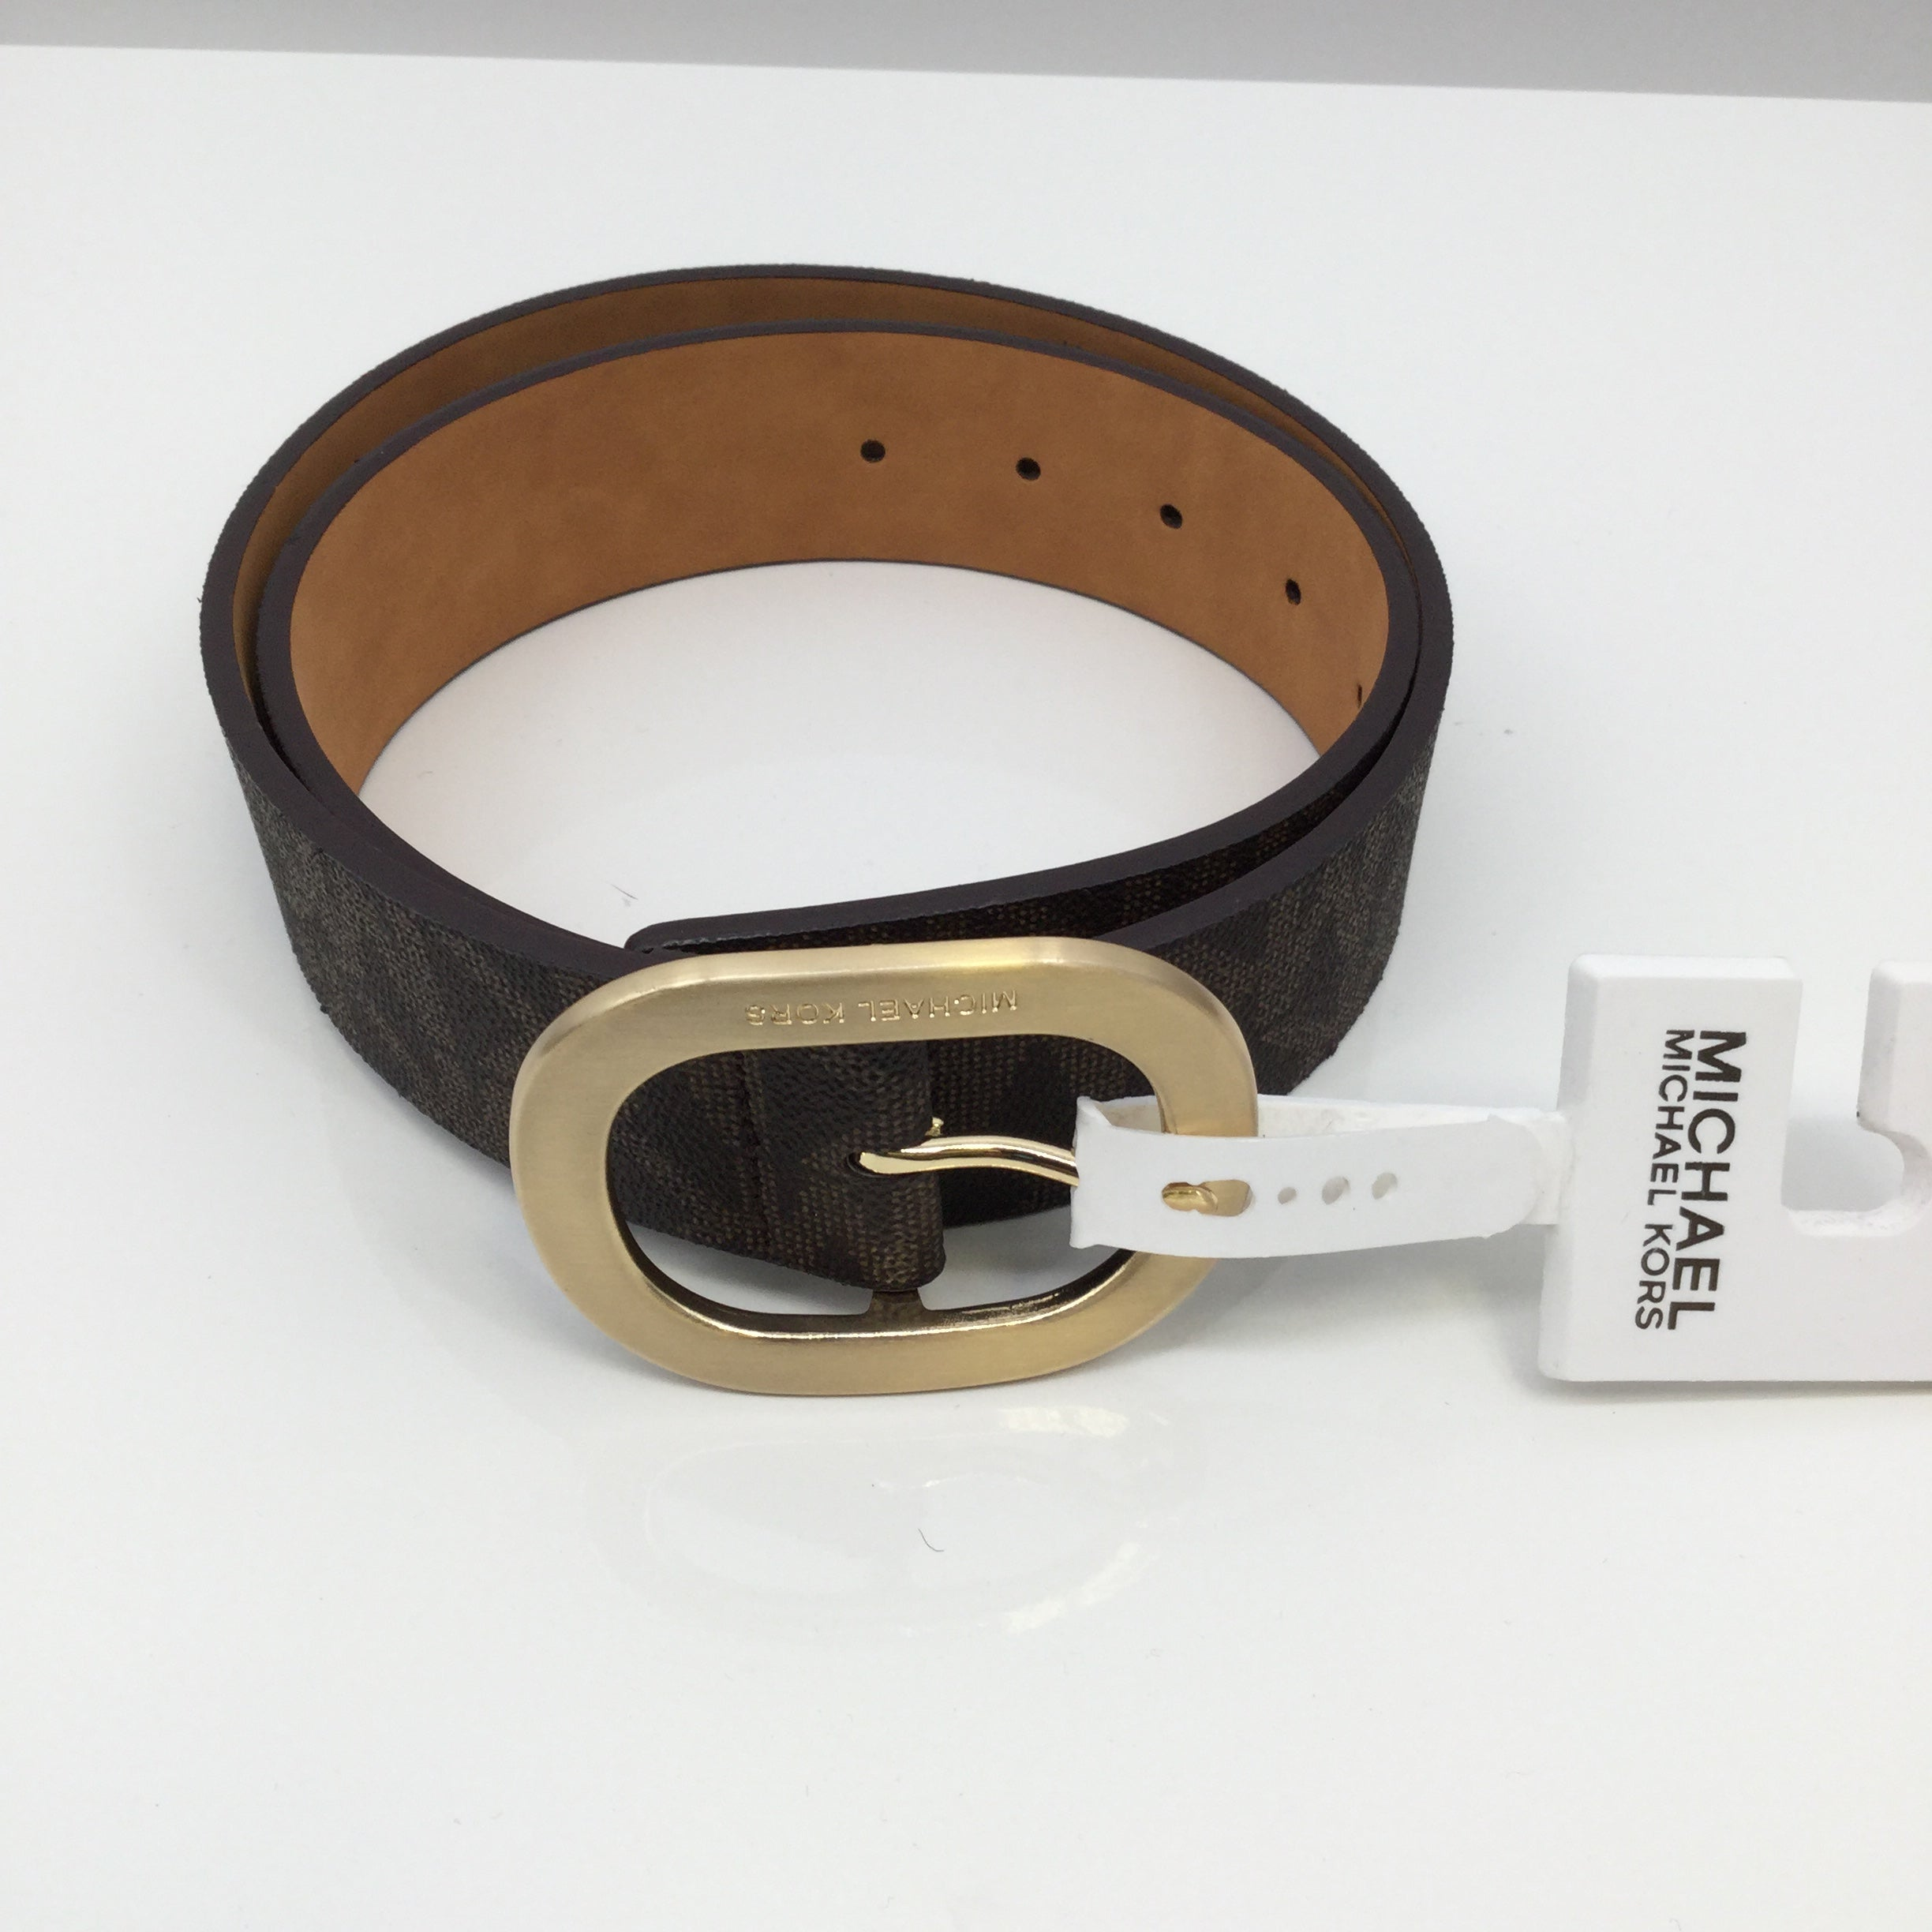 MICHAEL BY MICHAEL KORS BELT SIZE:S - BRAND NEW MICHAEL KORS BELT. SIZE S. SYNTHETIC LEATHER.